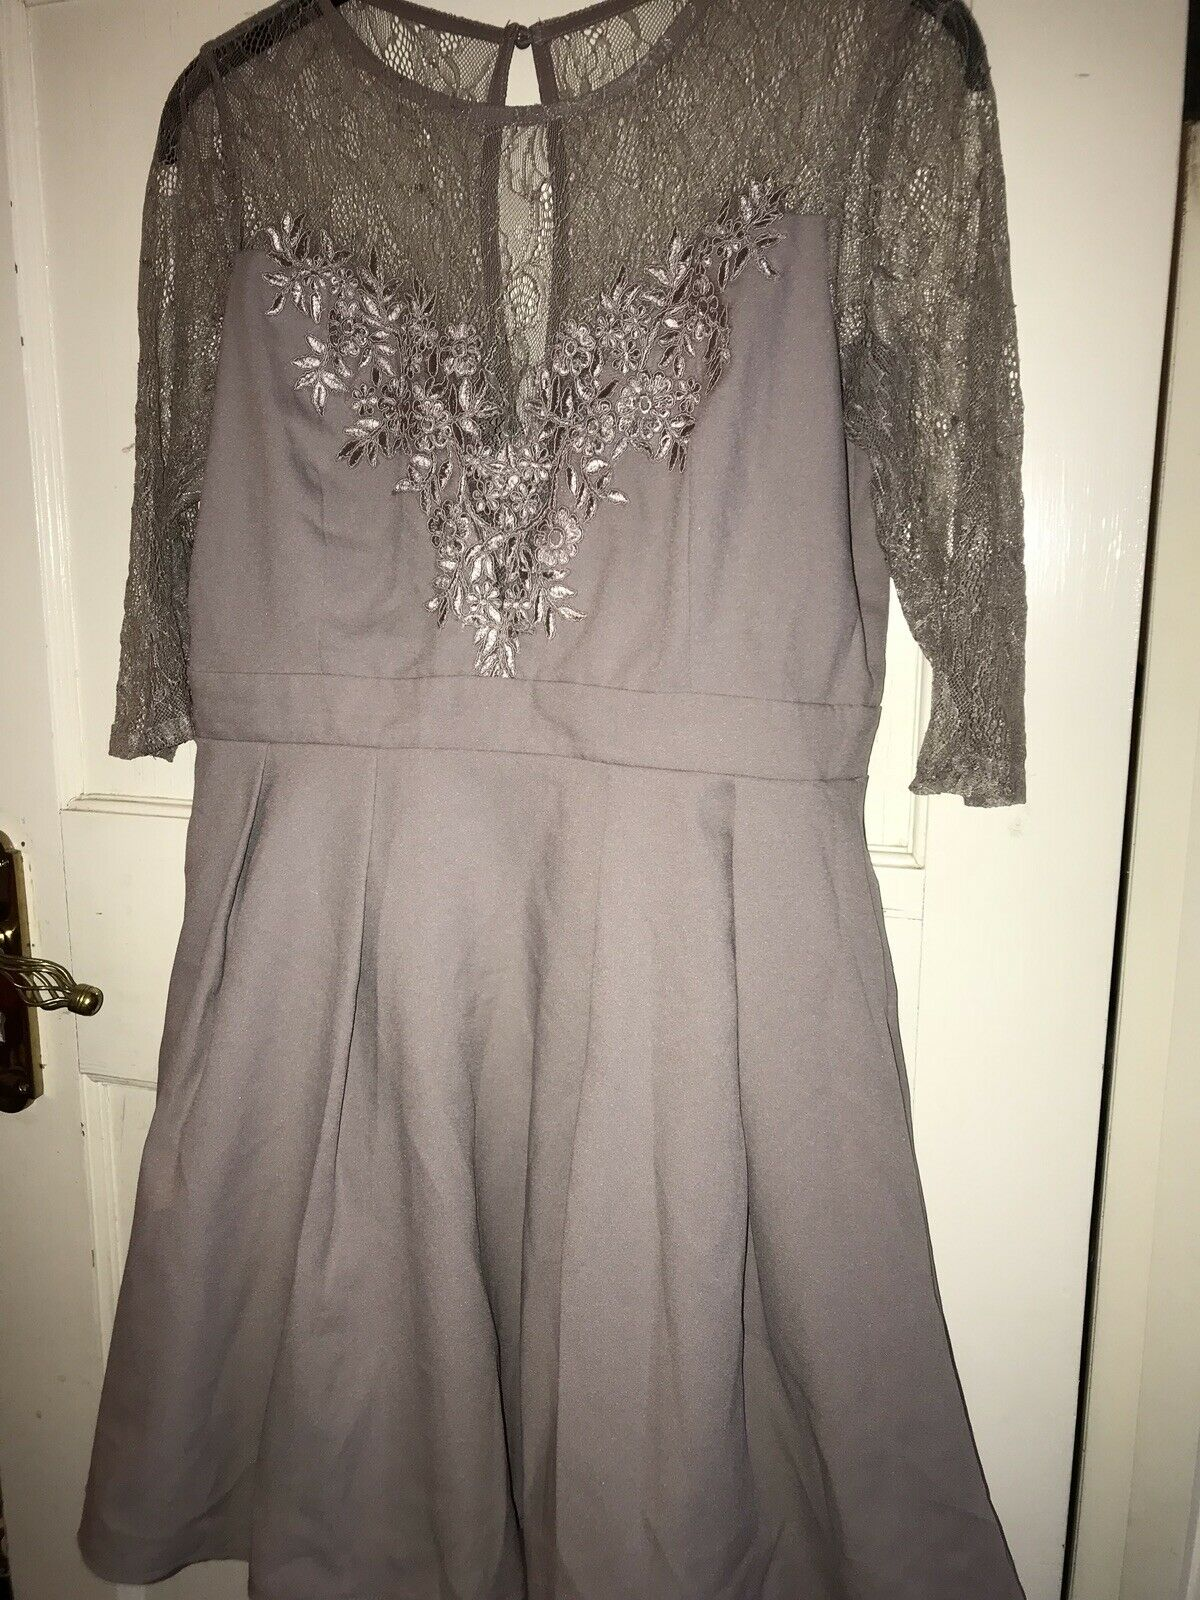 Little Mistress Dress Size 16 NEW With Tags Lace Pink Grey Sleeved